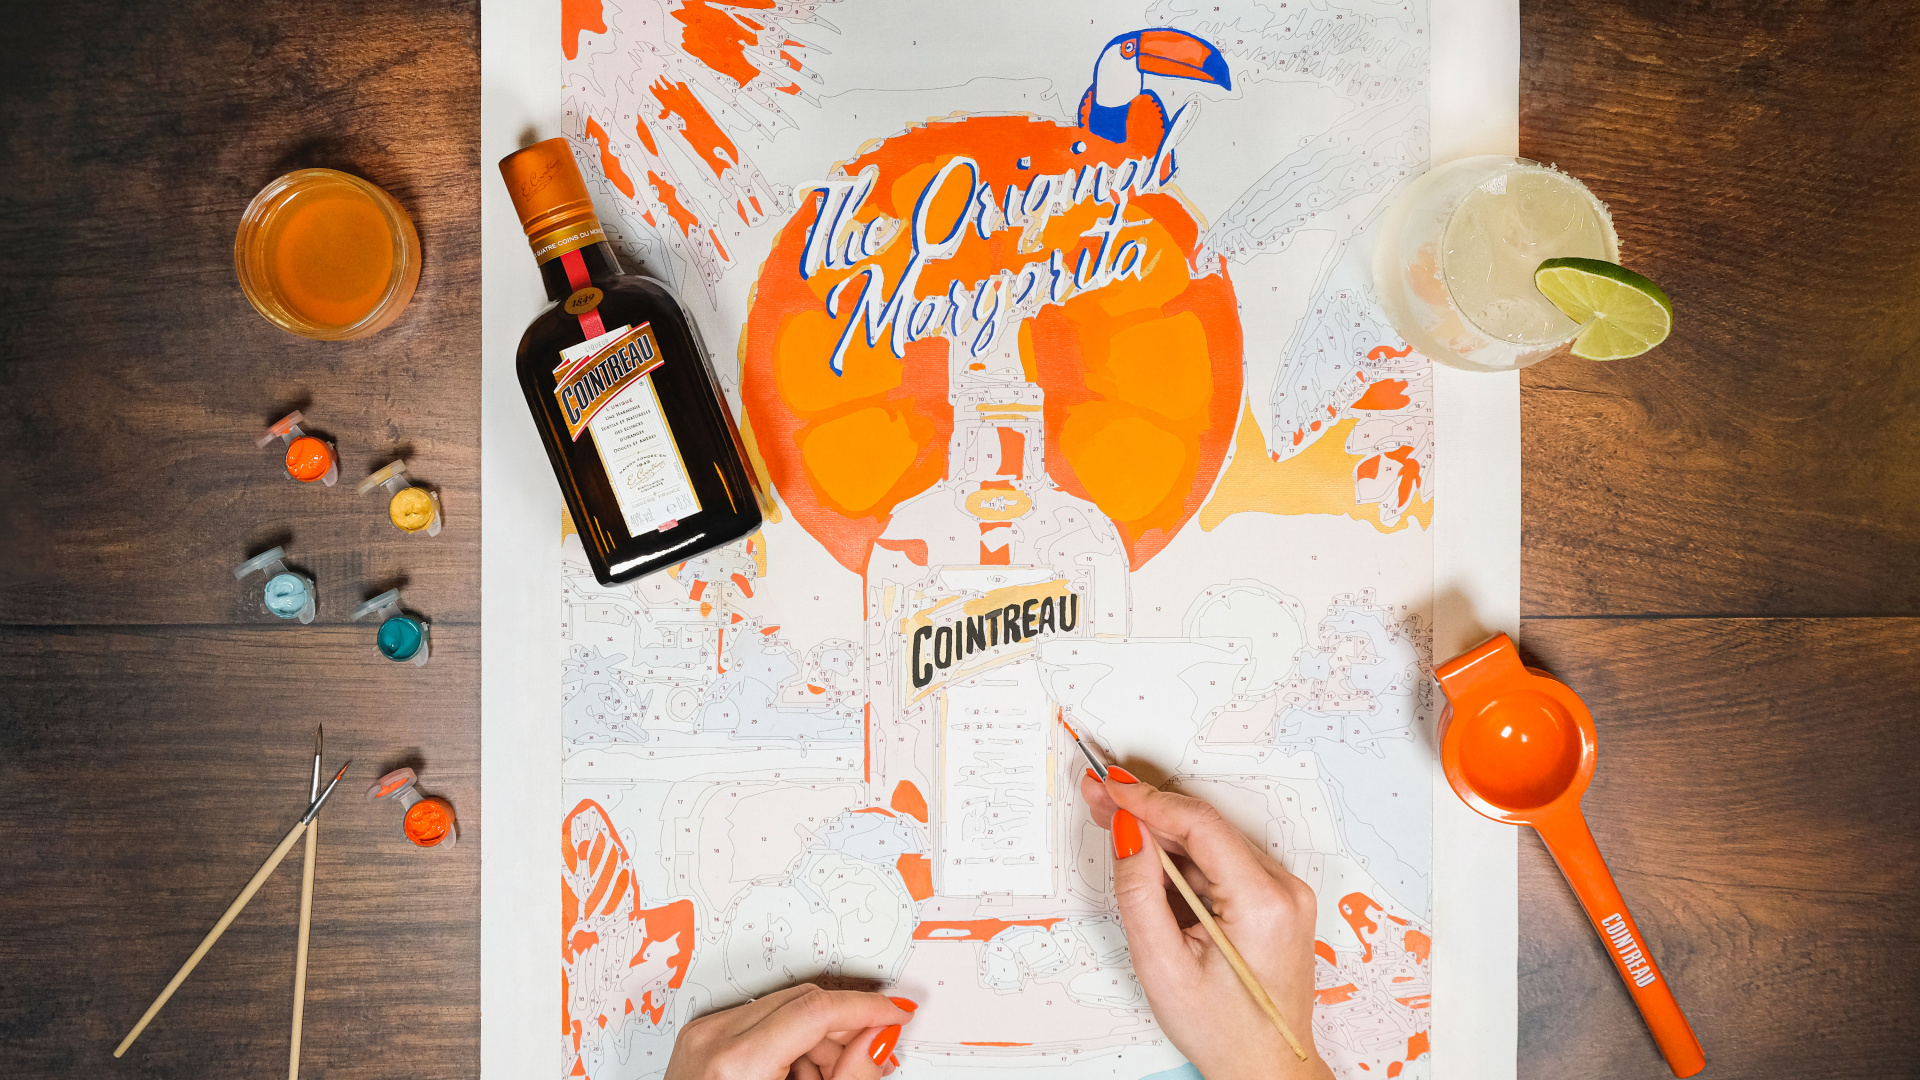 Cointreau's margarita and paint by numbers kit